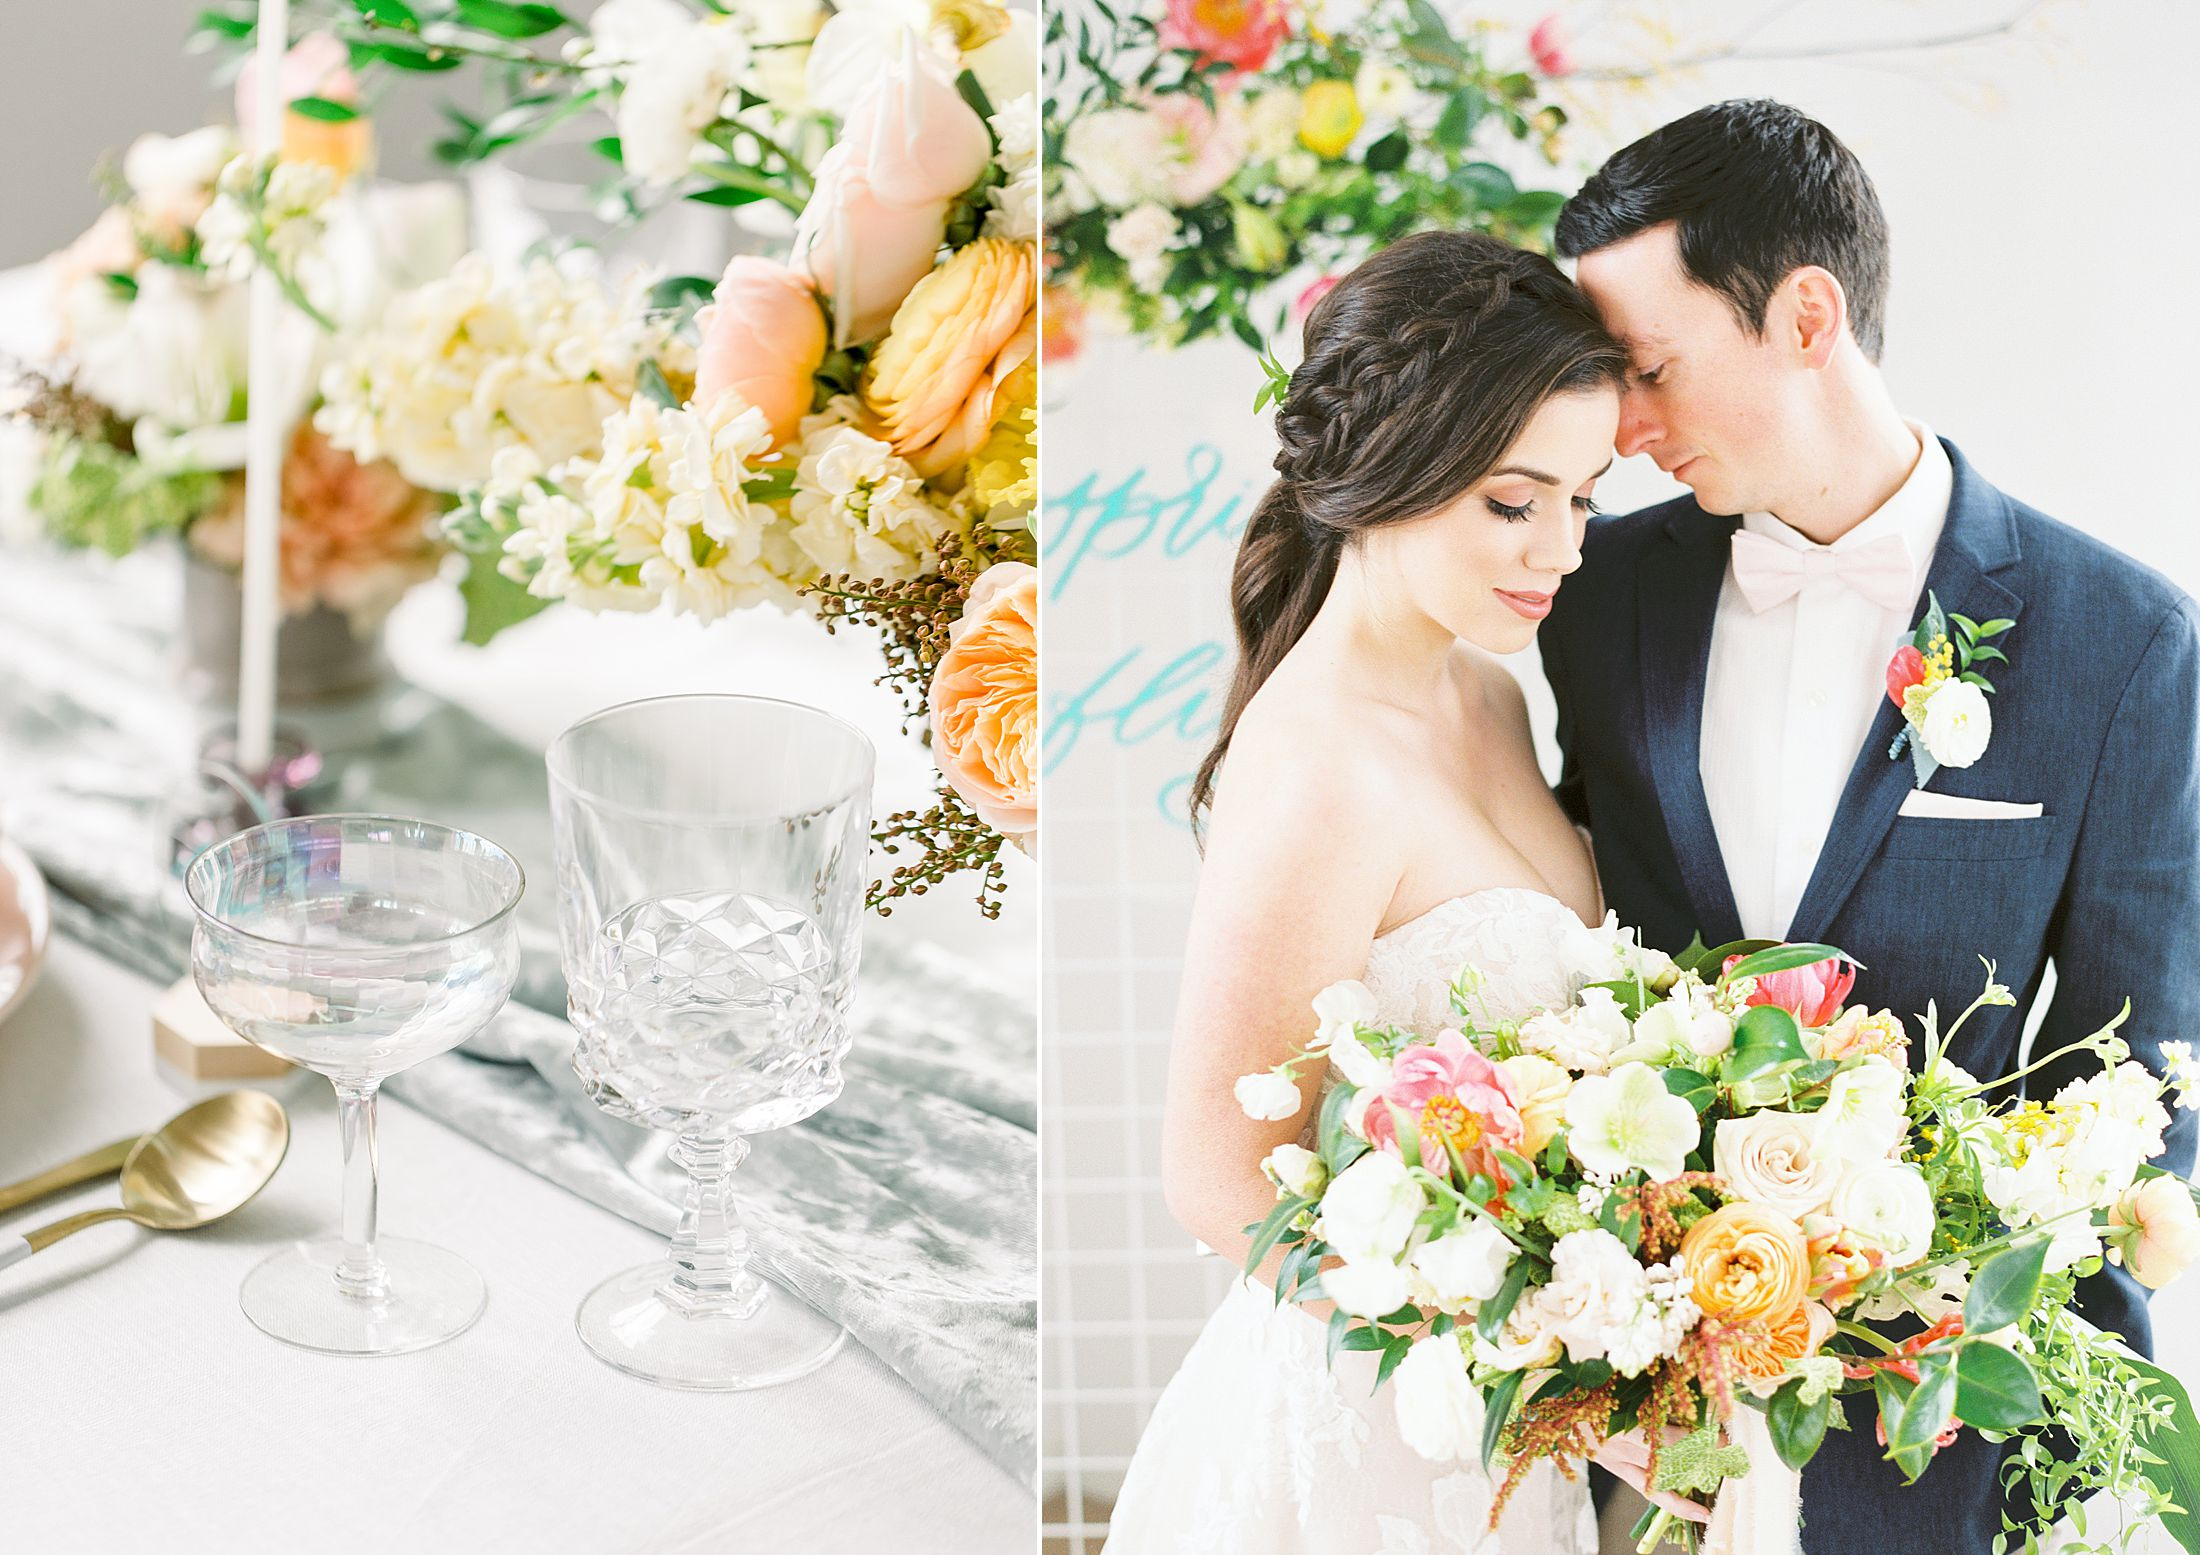 Bay Area Spring Wedding Inspiration - Ashley Baumgartner - Inspired By This - Party Crush Studio and Lens of Lenox Videography - Bay Area Wedding Photography_0067.jpg